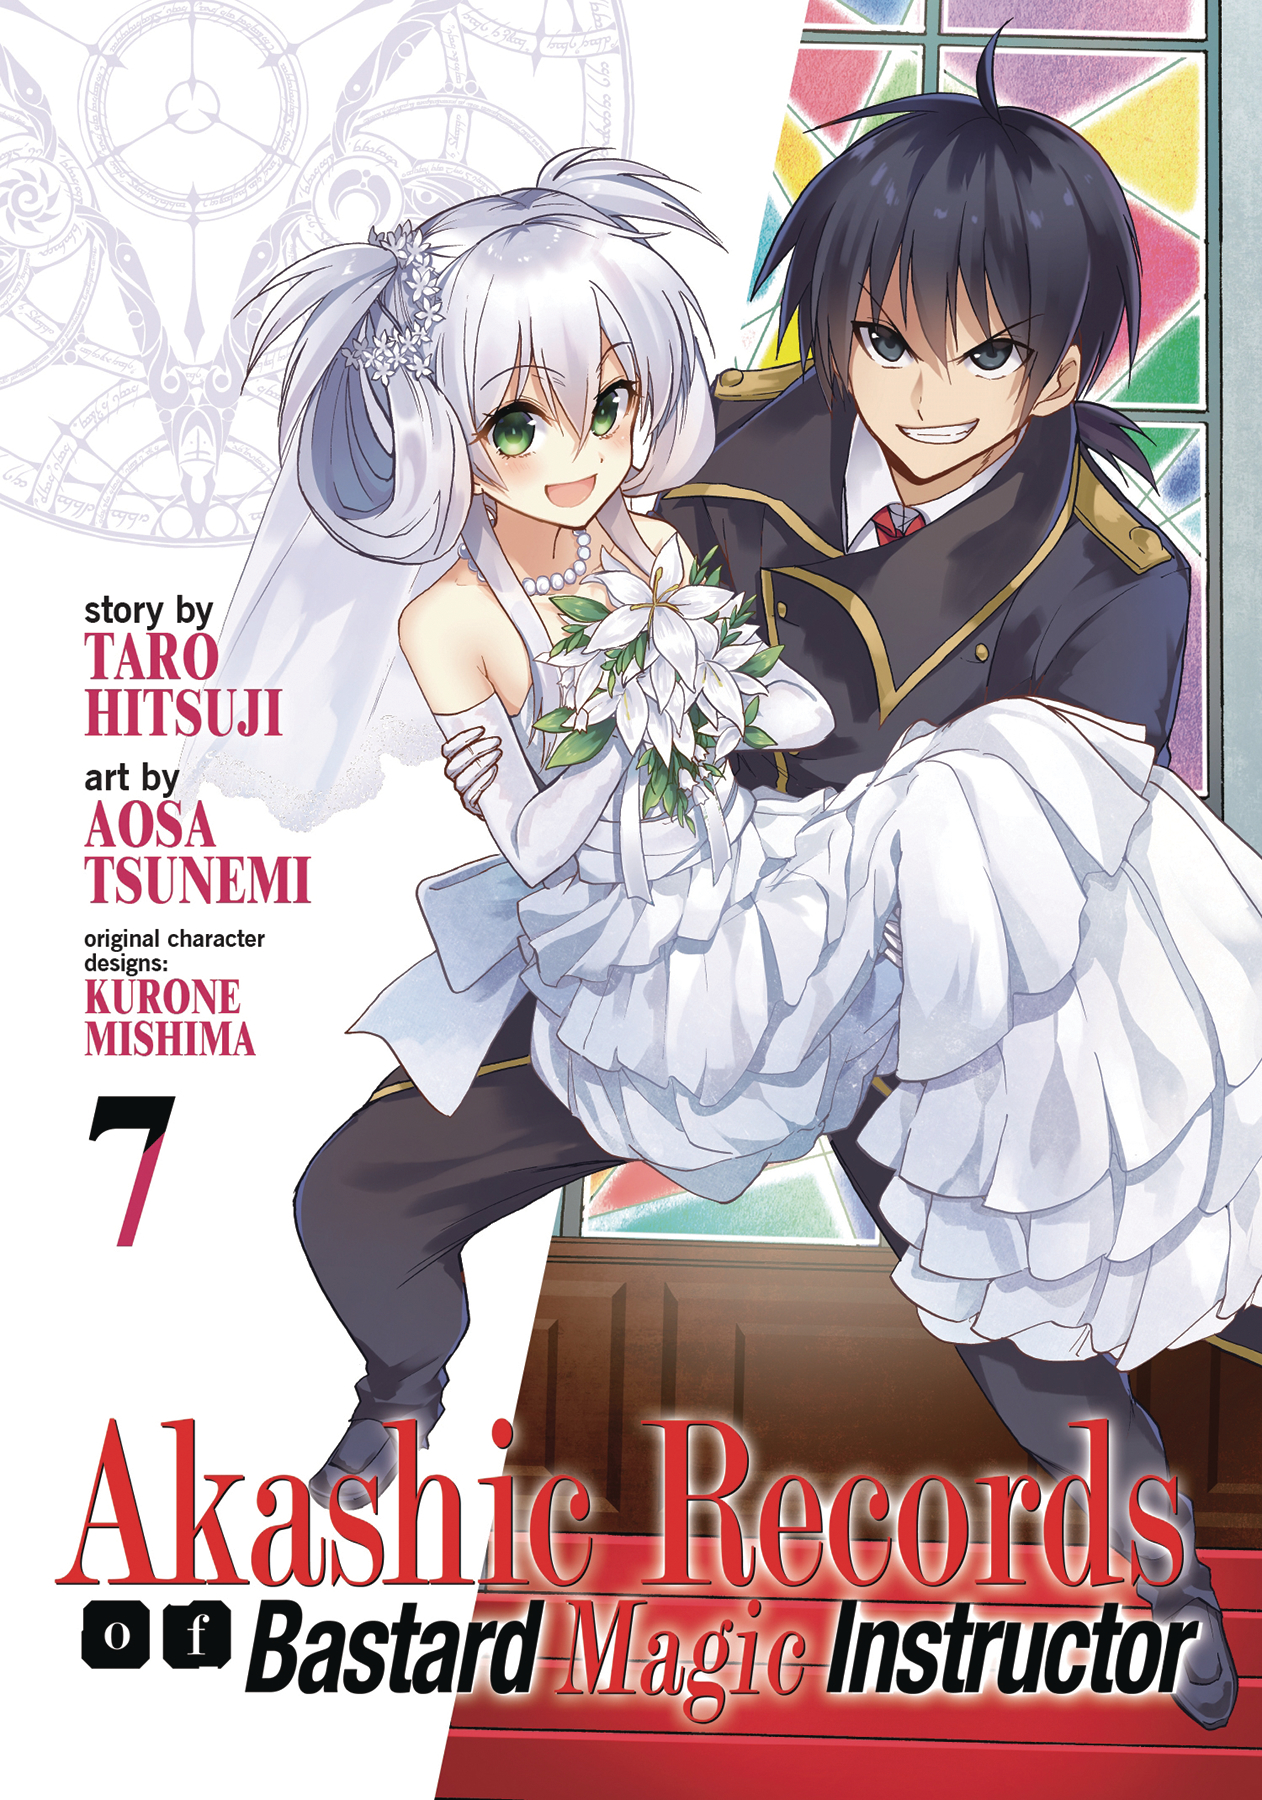 AKASHIC RECORDS OF BASTARD MAGICAL INSTRUCTOR GN VOL 07